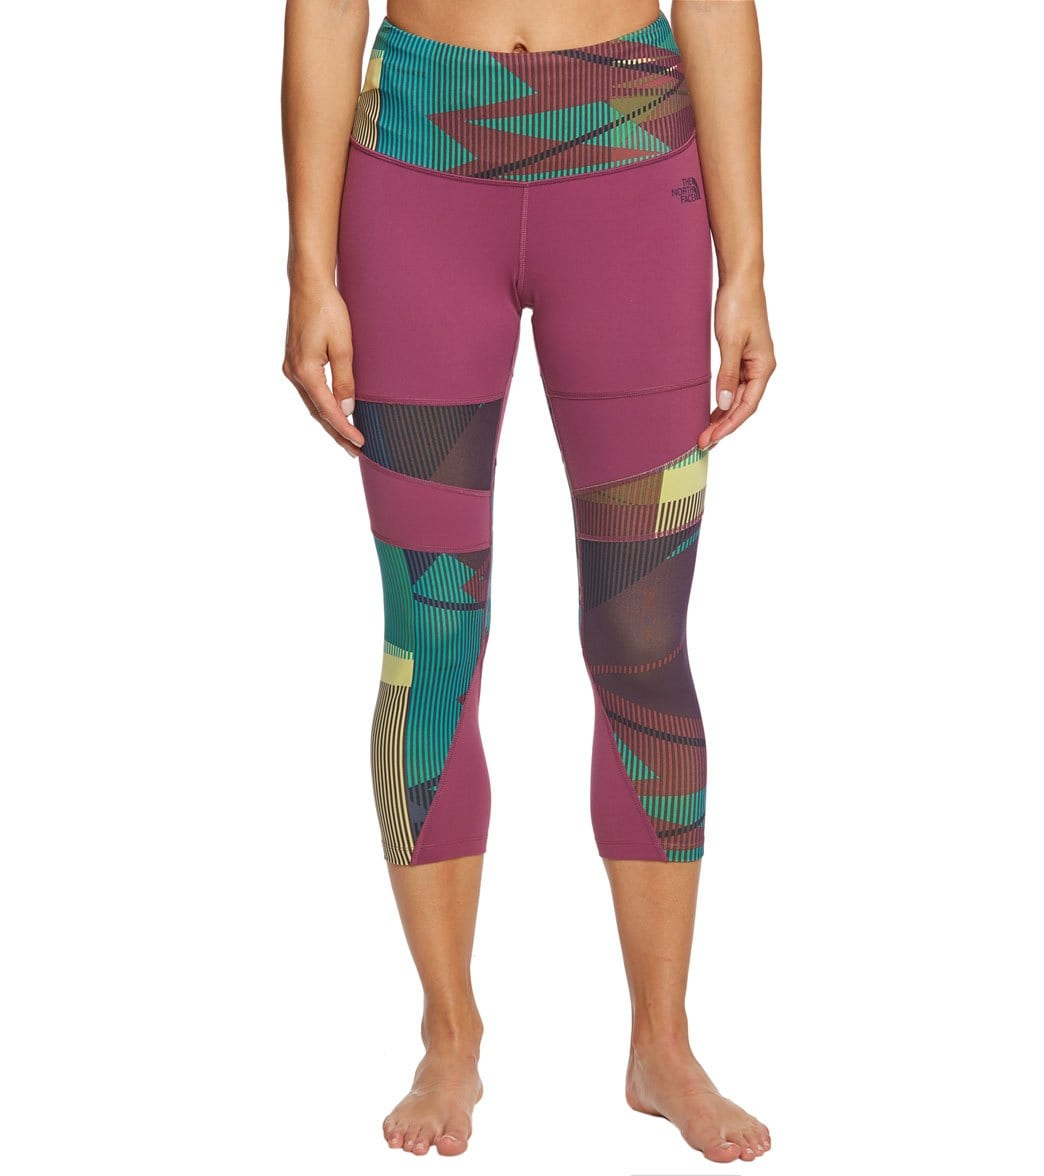 90e0563374f2c The North Face Women's Motivation Printed Tight at SwimOutlet.com - Free  Shipping